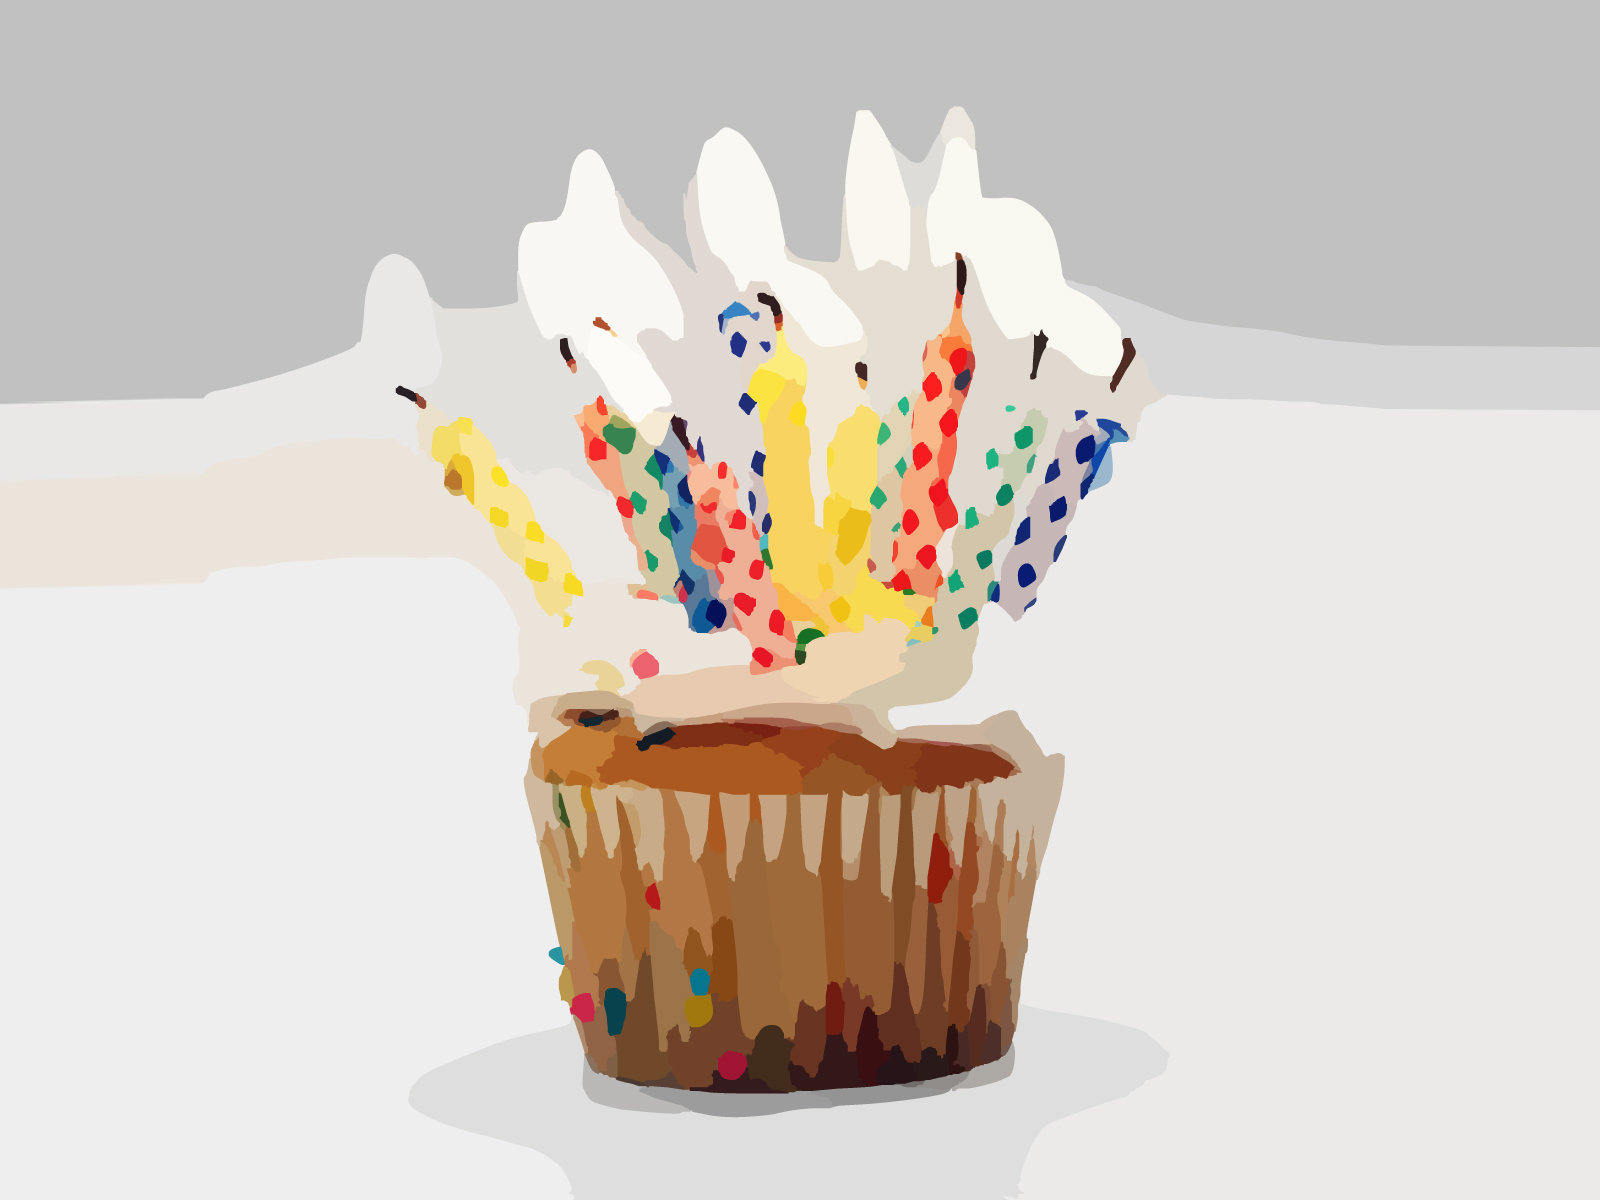 Blurred Birthday Cupcake Candles Backgrounds